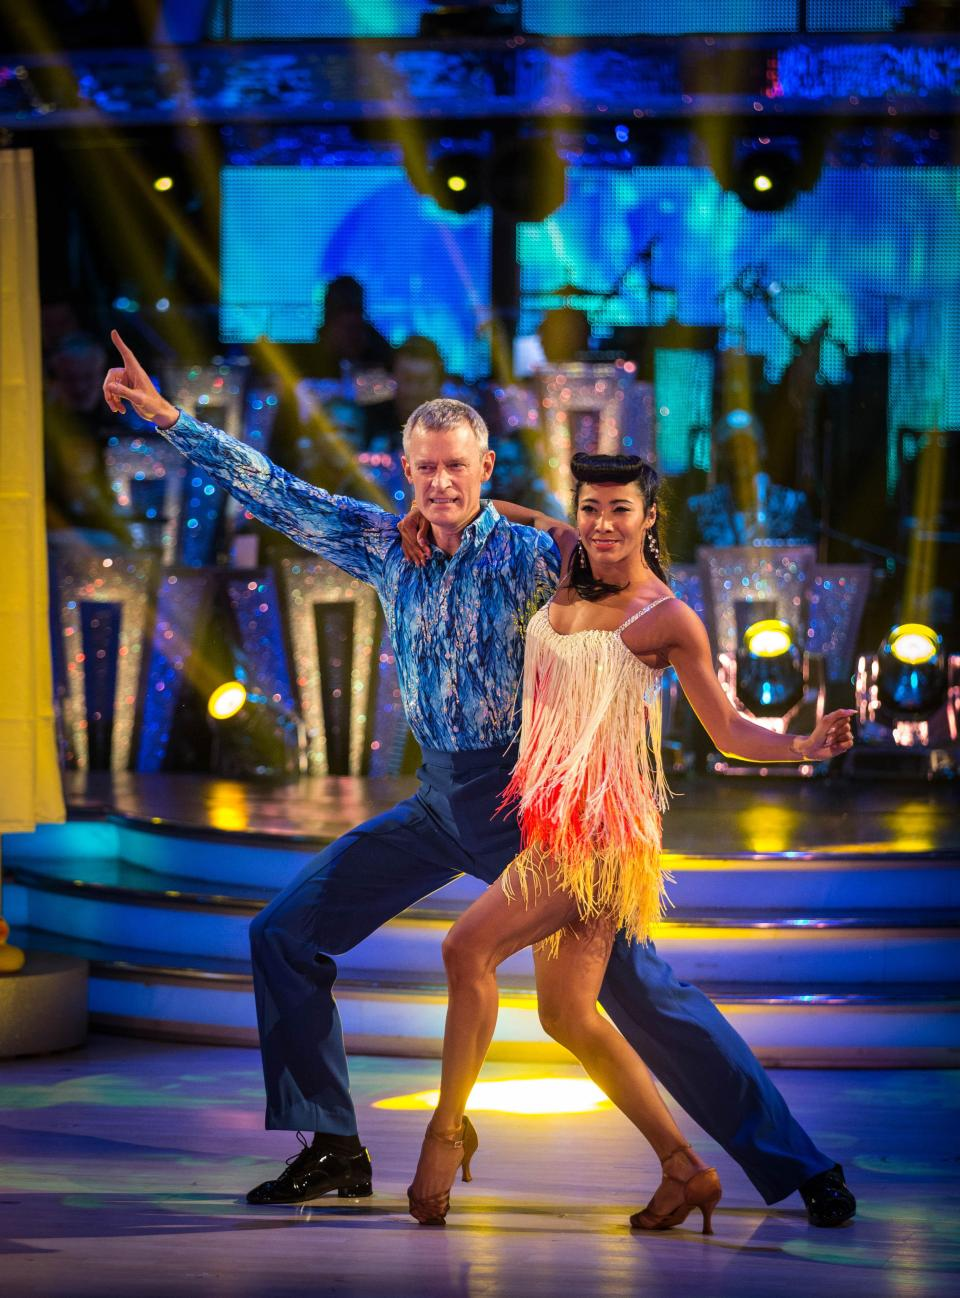 Jeremy Vine won over the nation with his groovy moves